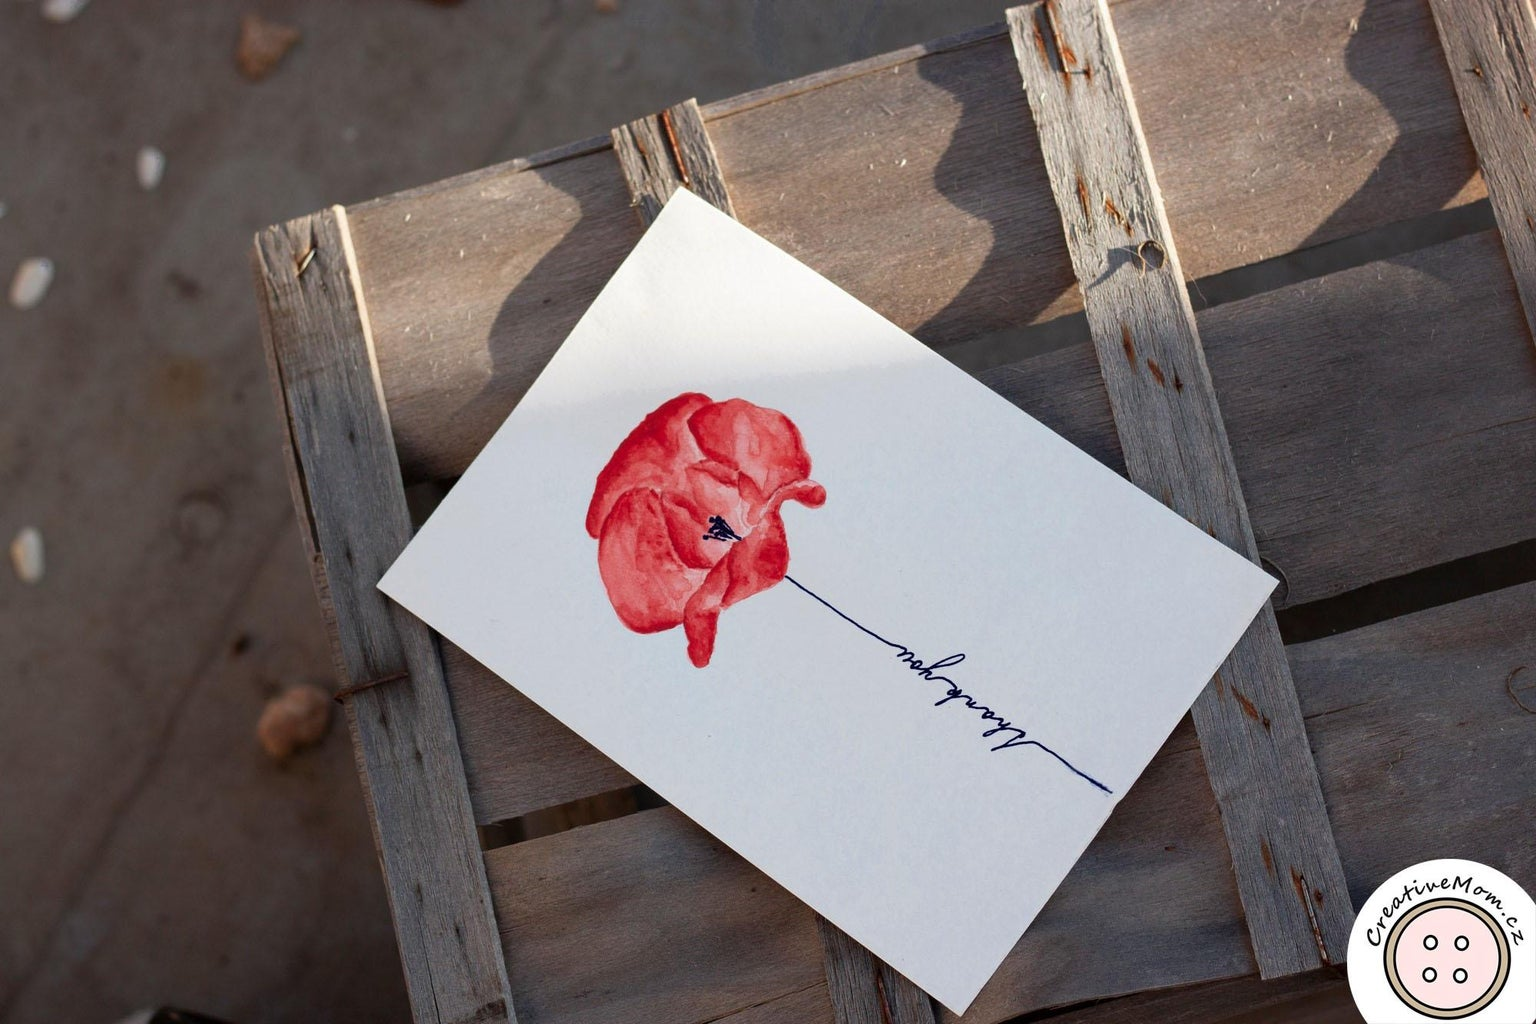 How to Paint a Poppy Even If You're a Beginner